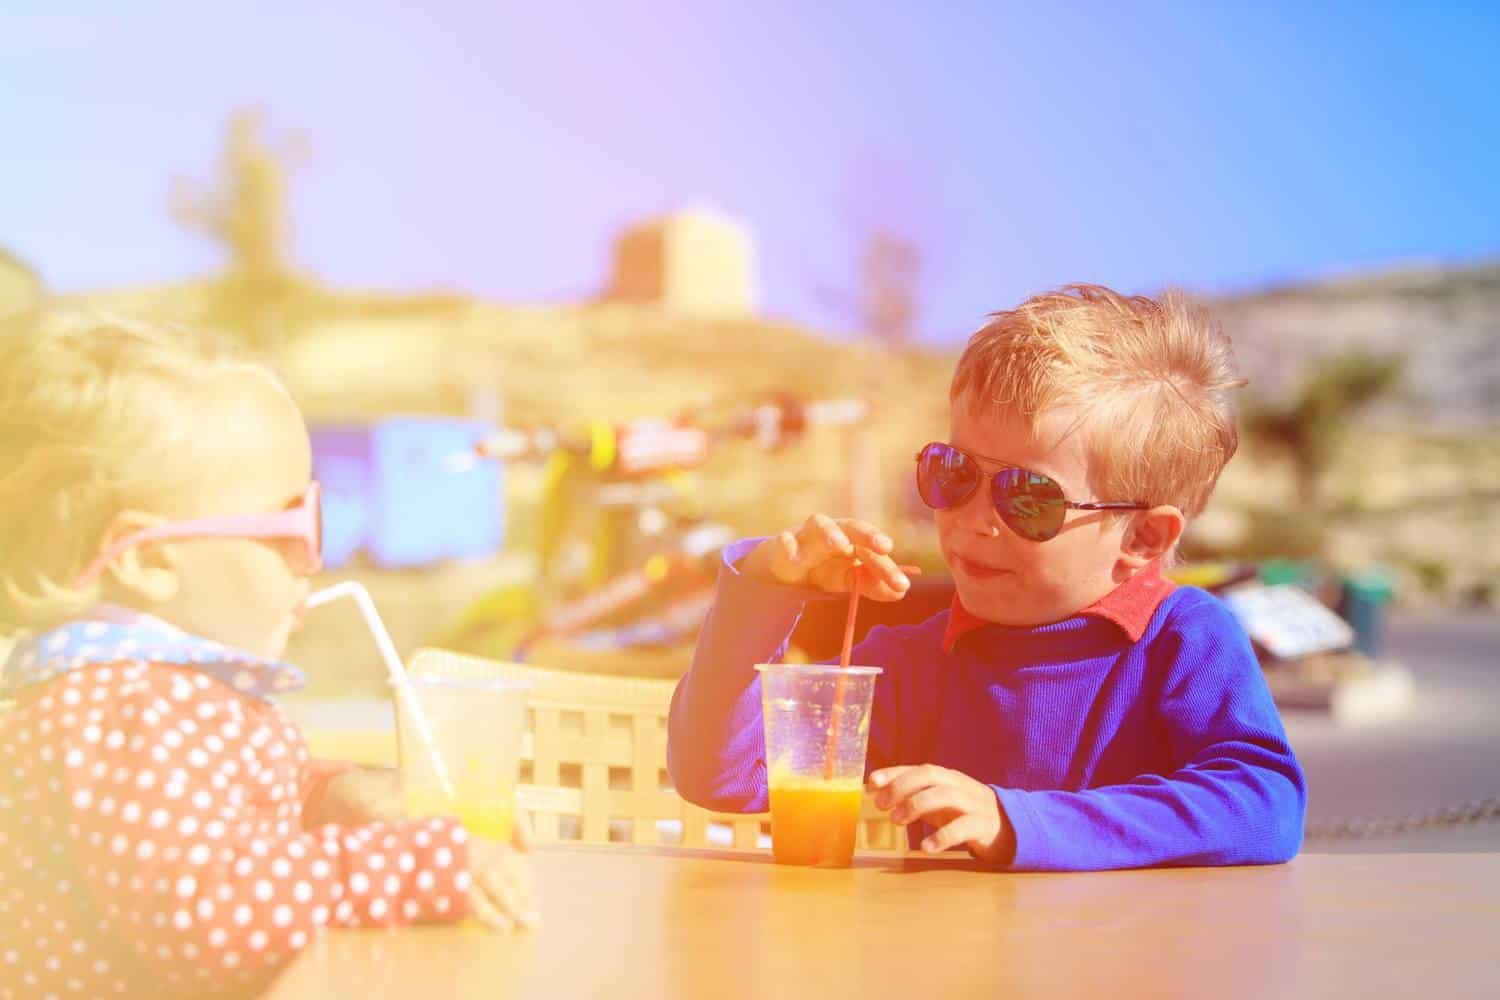 Two young children enjoying drinks at the beach.